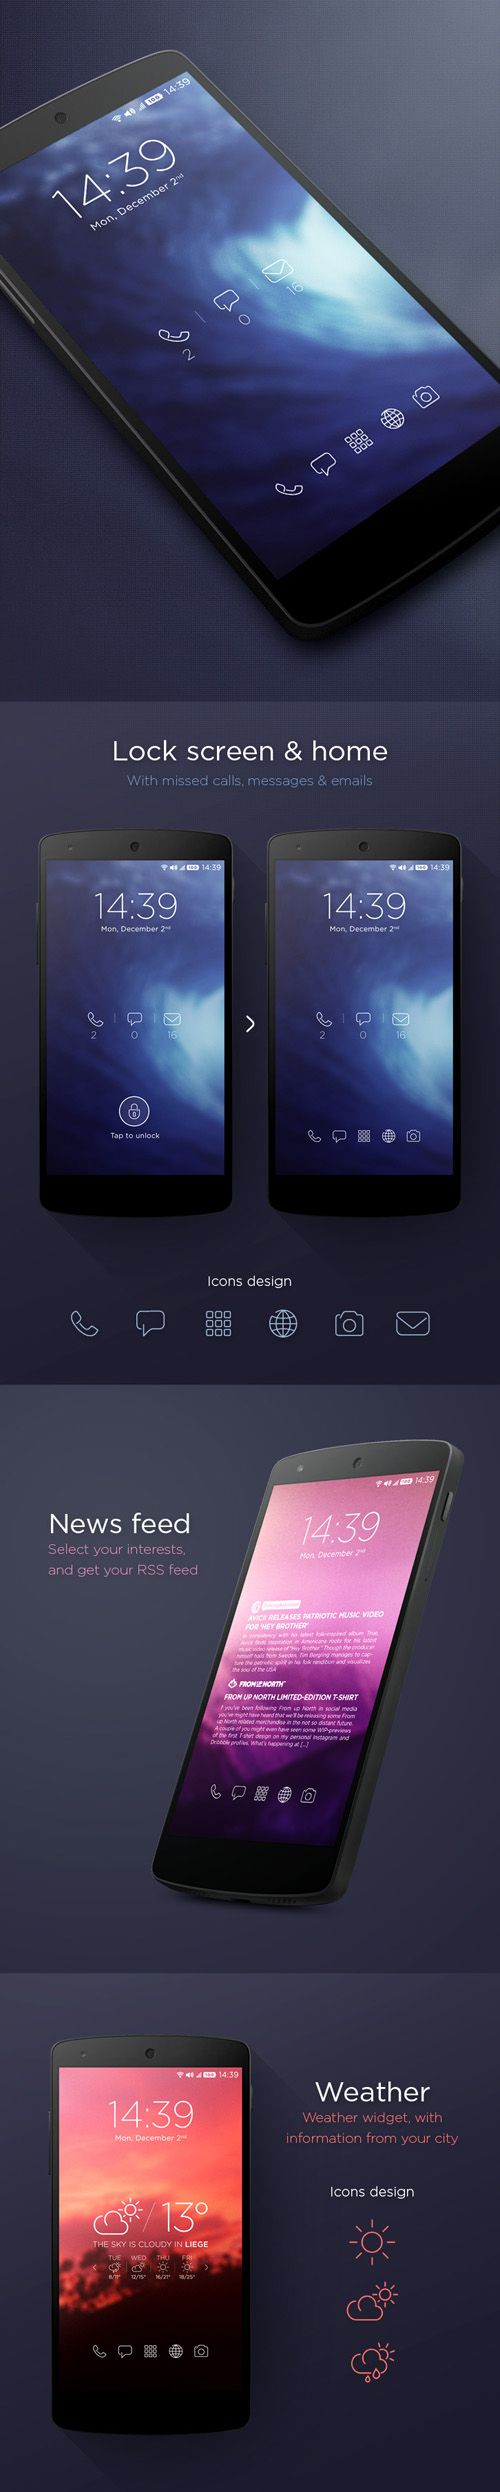 Innovative UI Design Concepts some great stuff